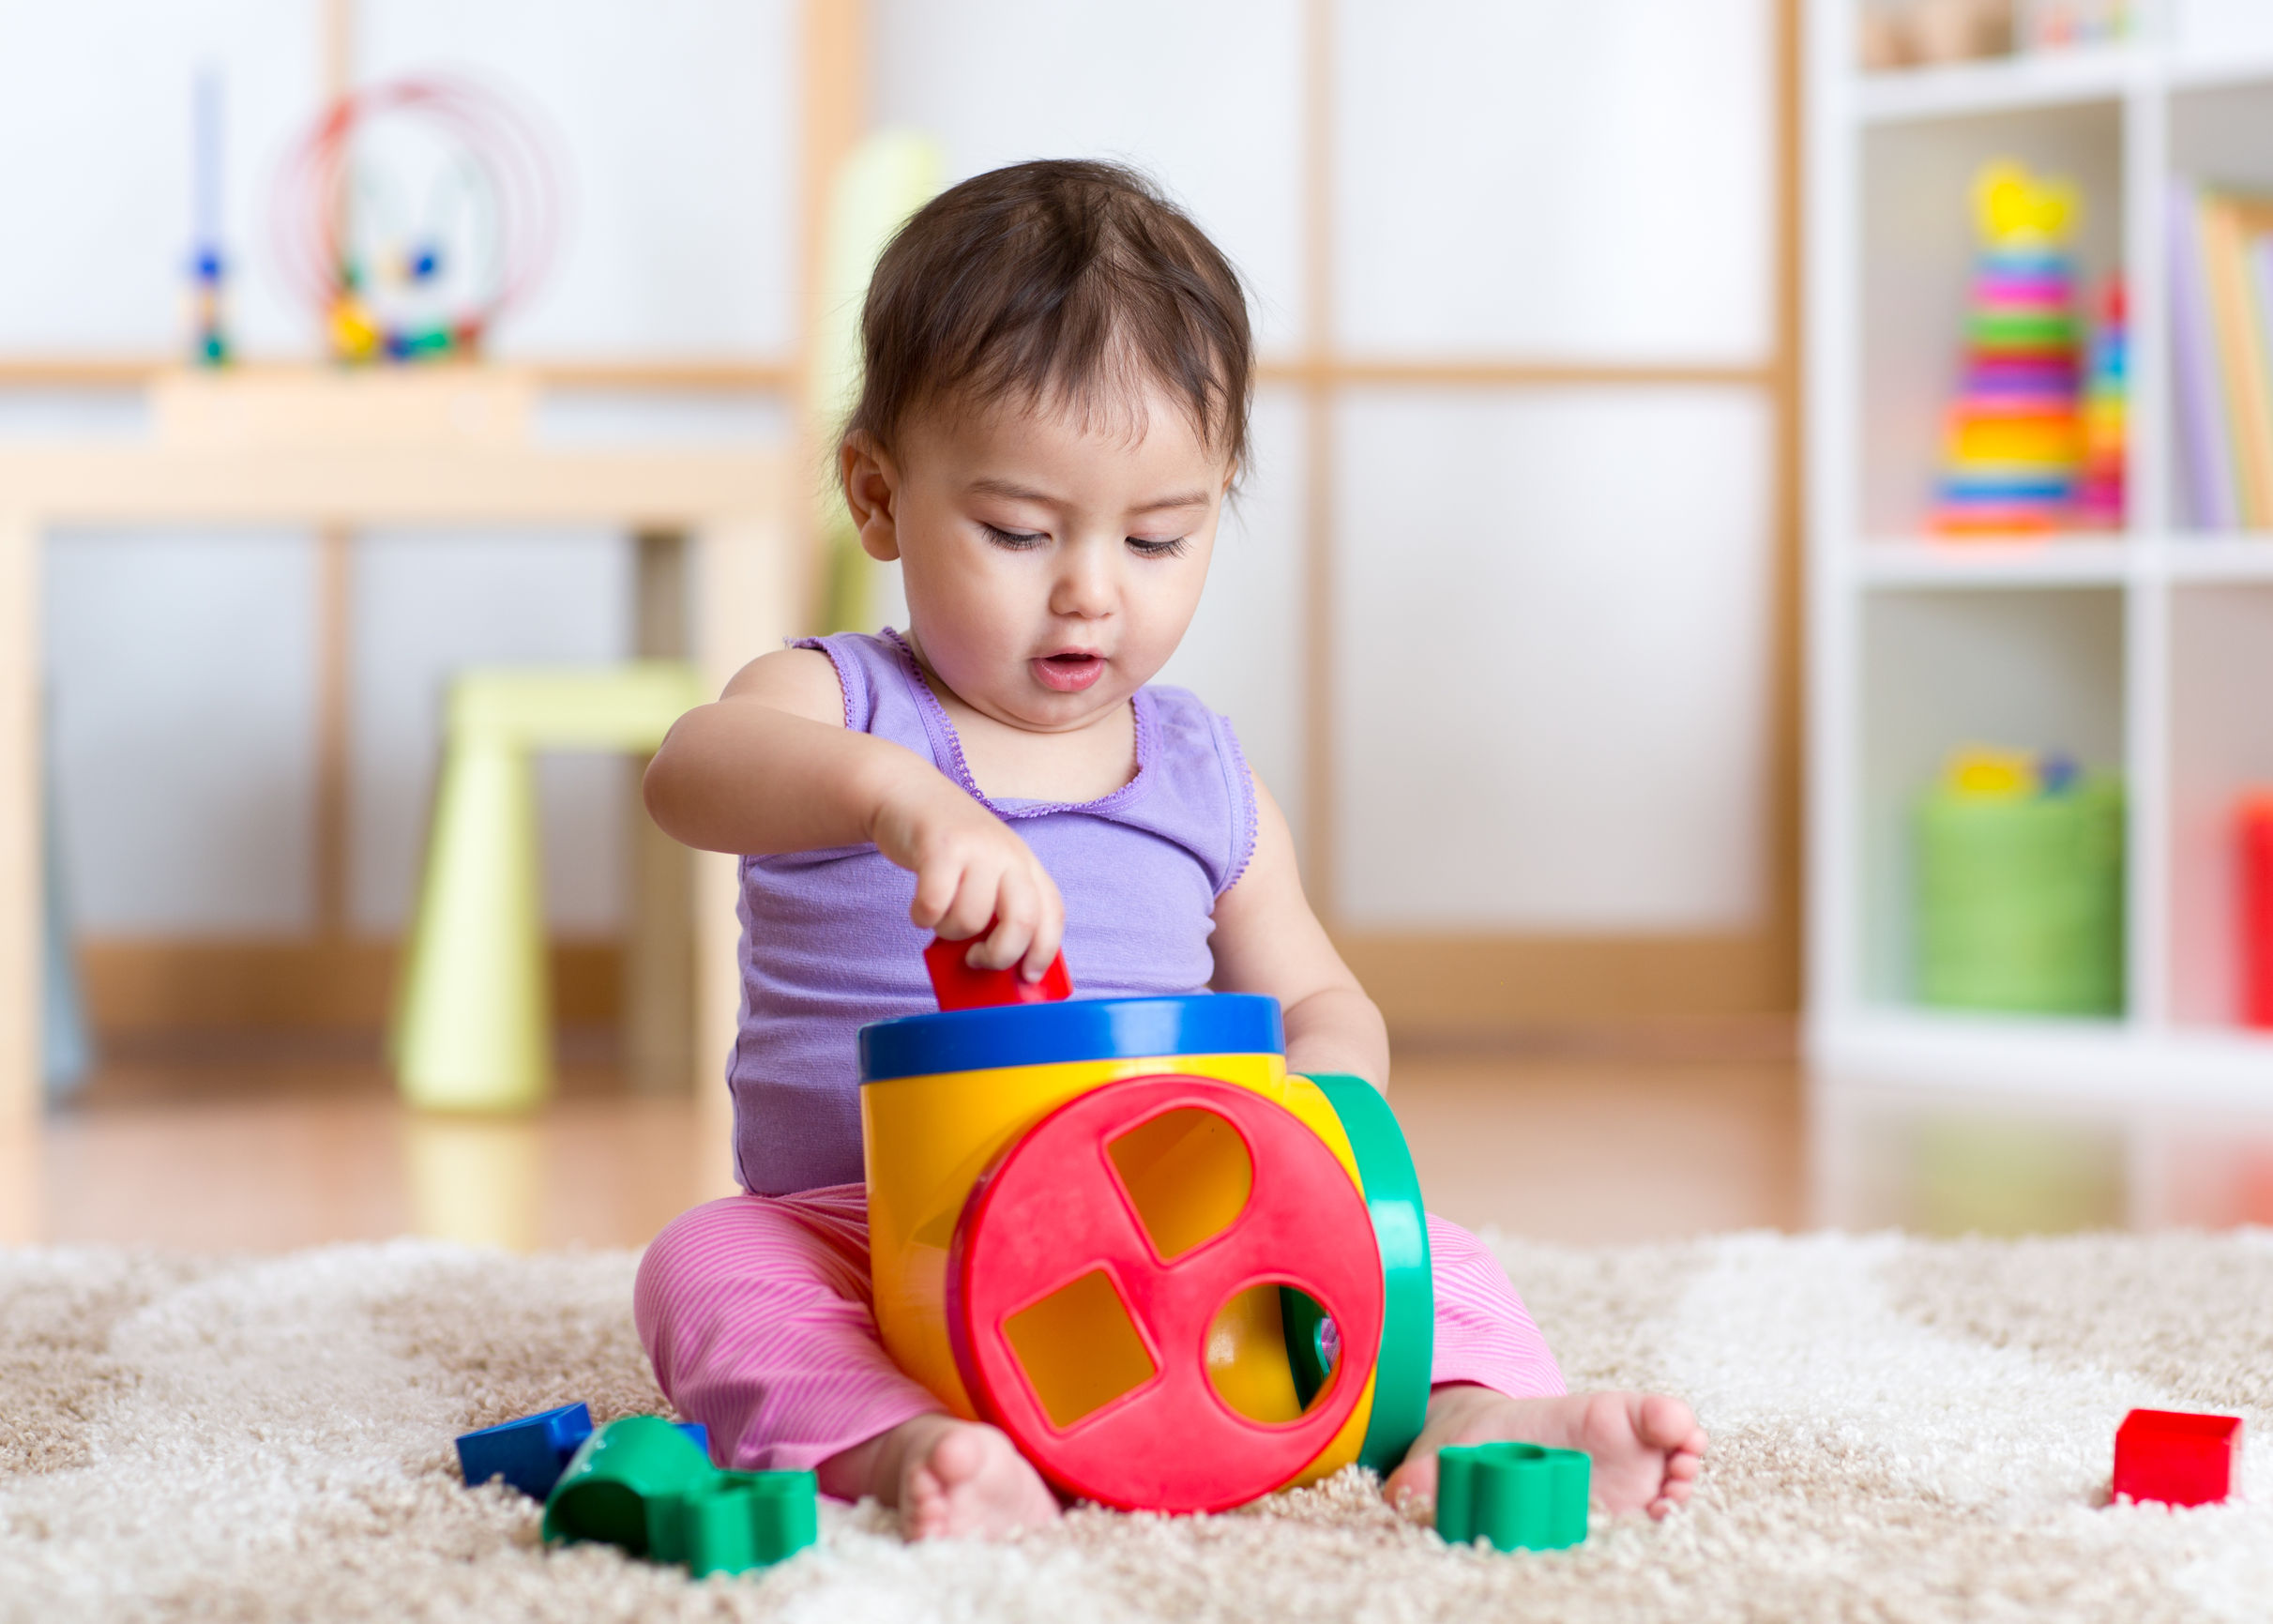 54307076 - cute toddler girl playing indoors with sorter toy sitting on soft carpet